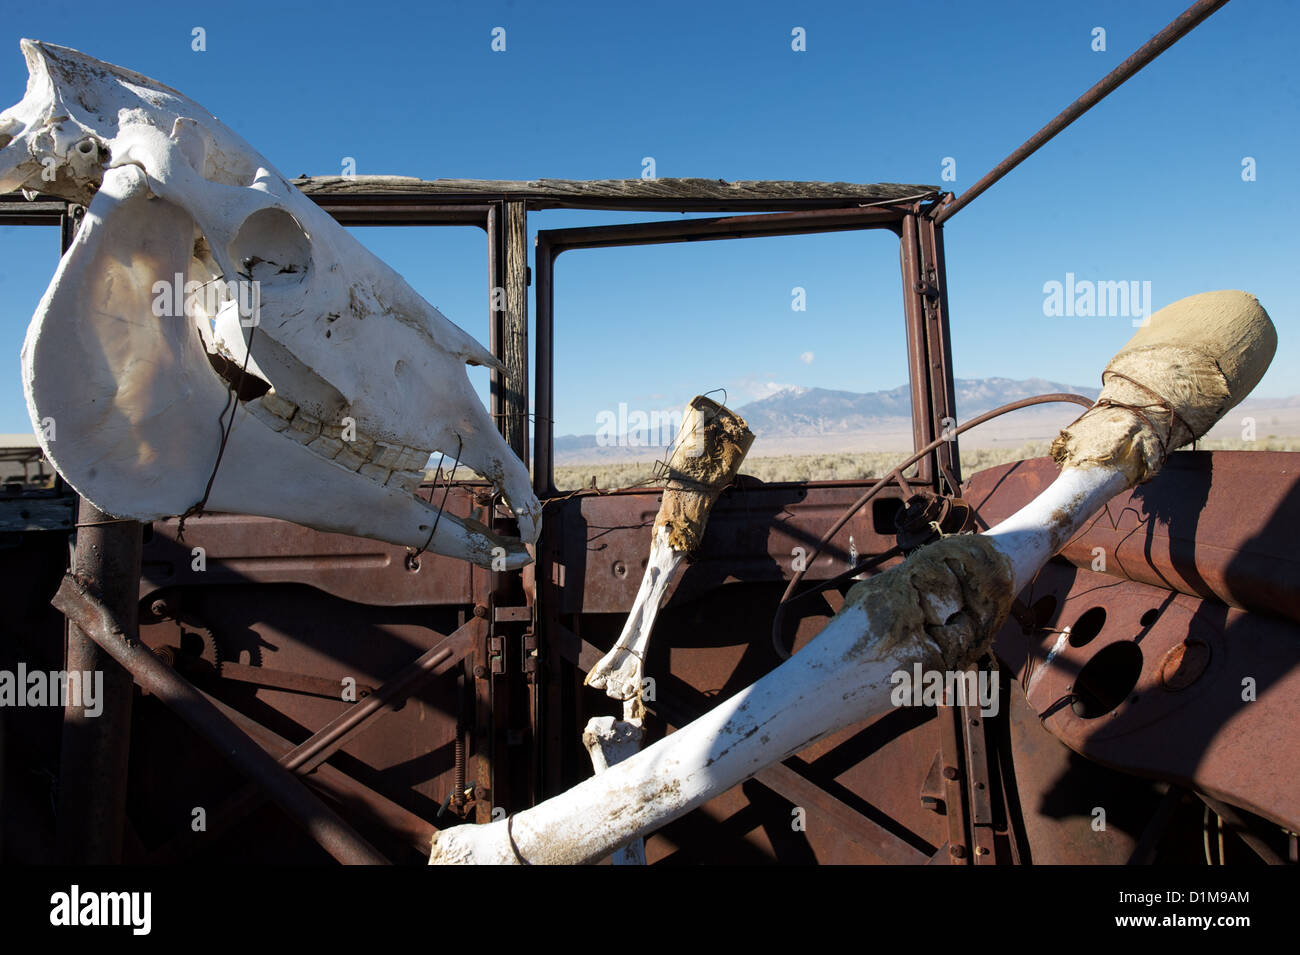 Horse skull and skeleton driving rusty car, illustrating the concept of death at the wheel, dangerous driving or - Stock Image